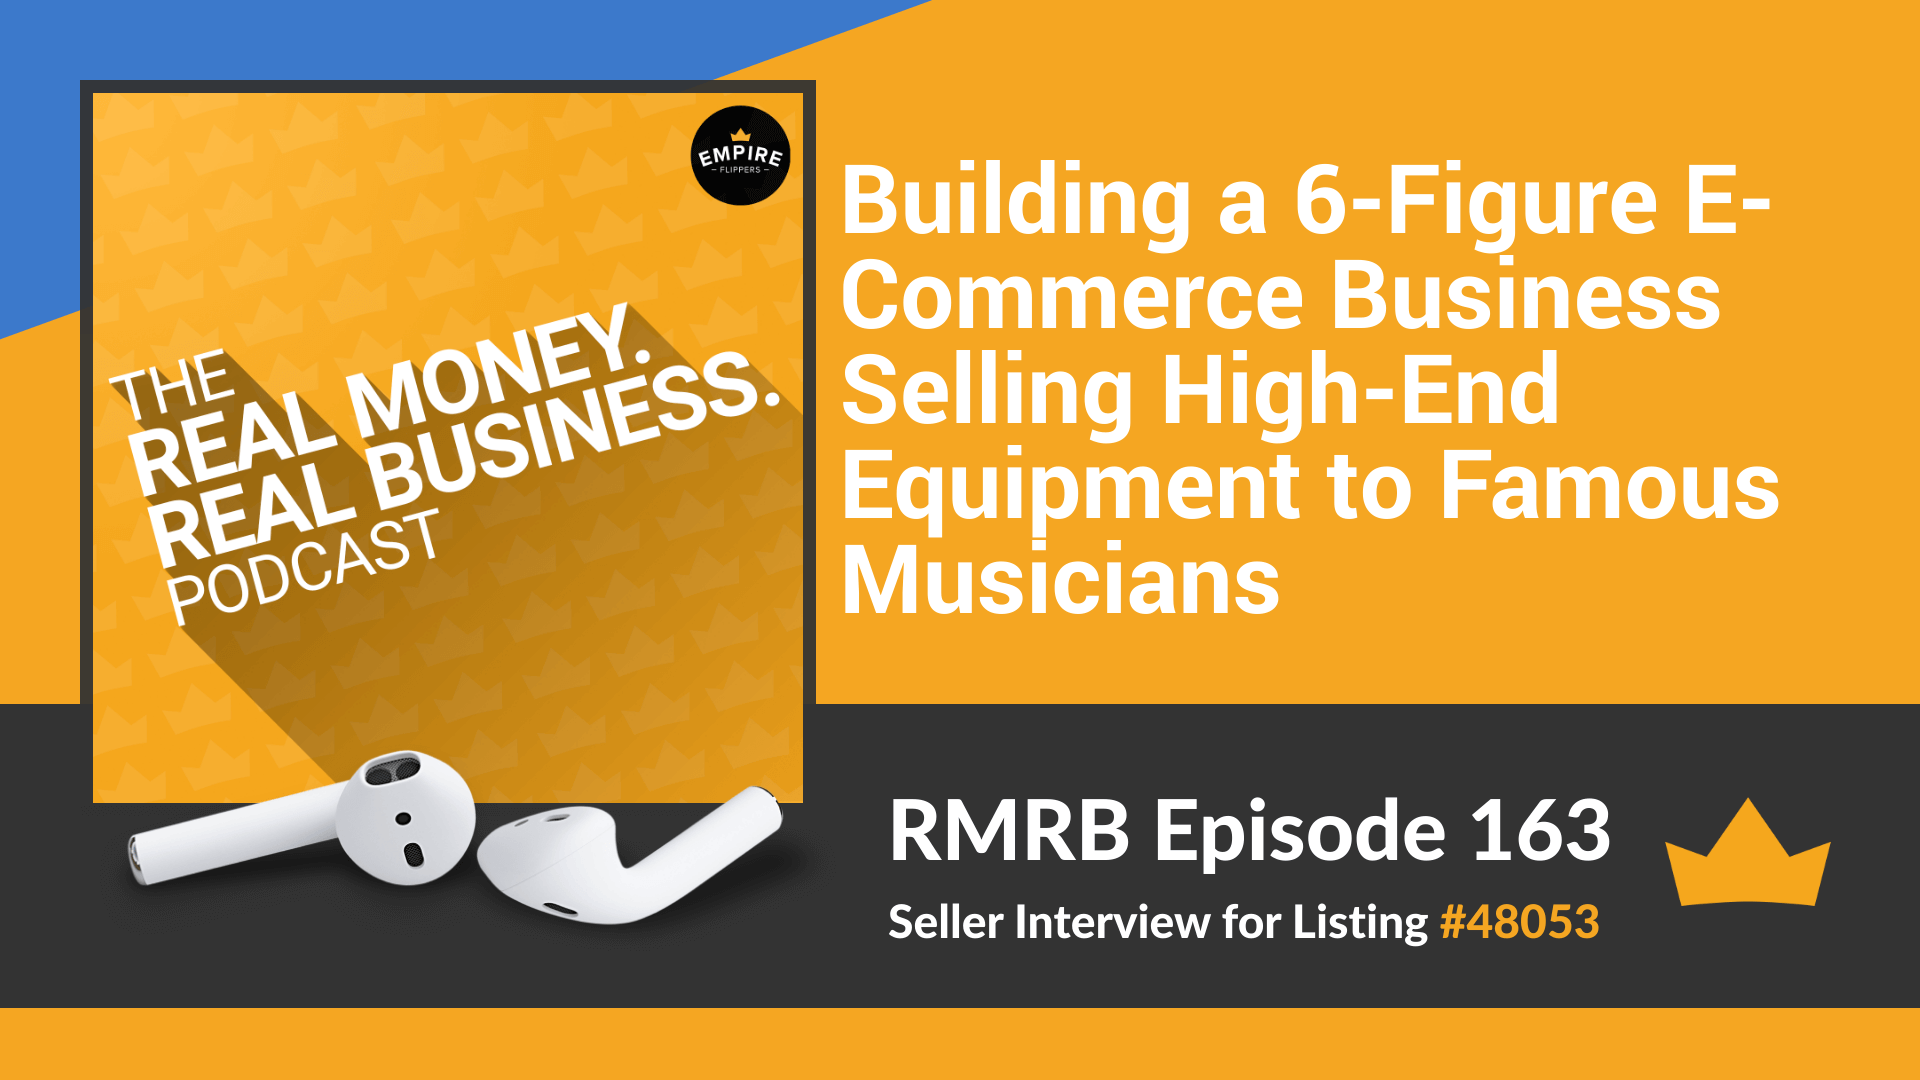 RMRB 163: Building a 6-Figure E-Commerce Business Selling High-End Equipment to Famous Musicians